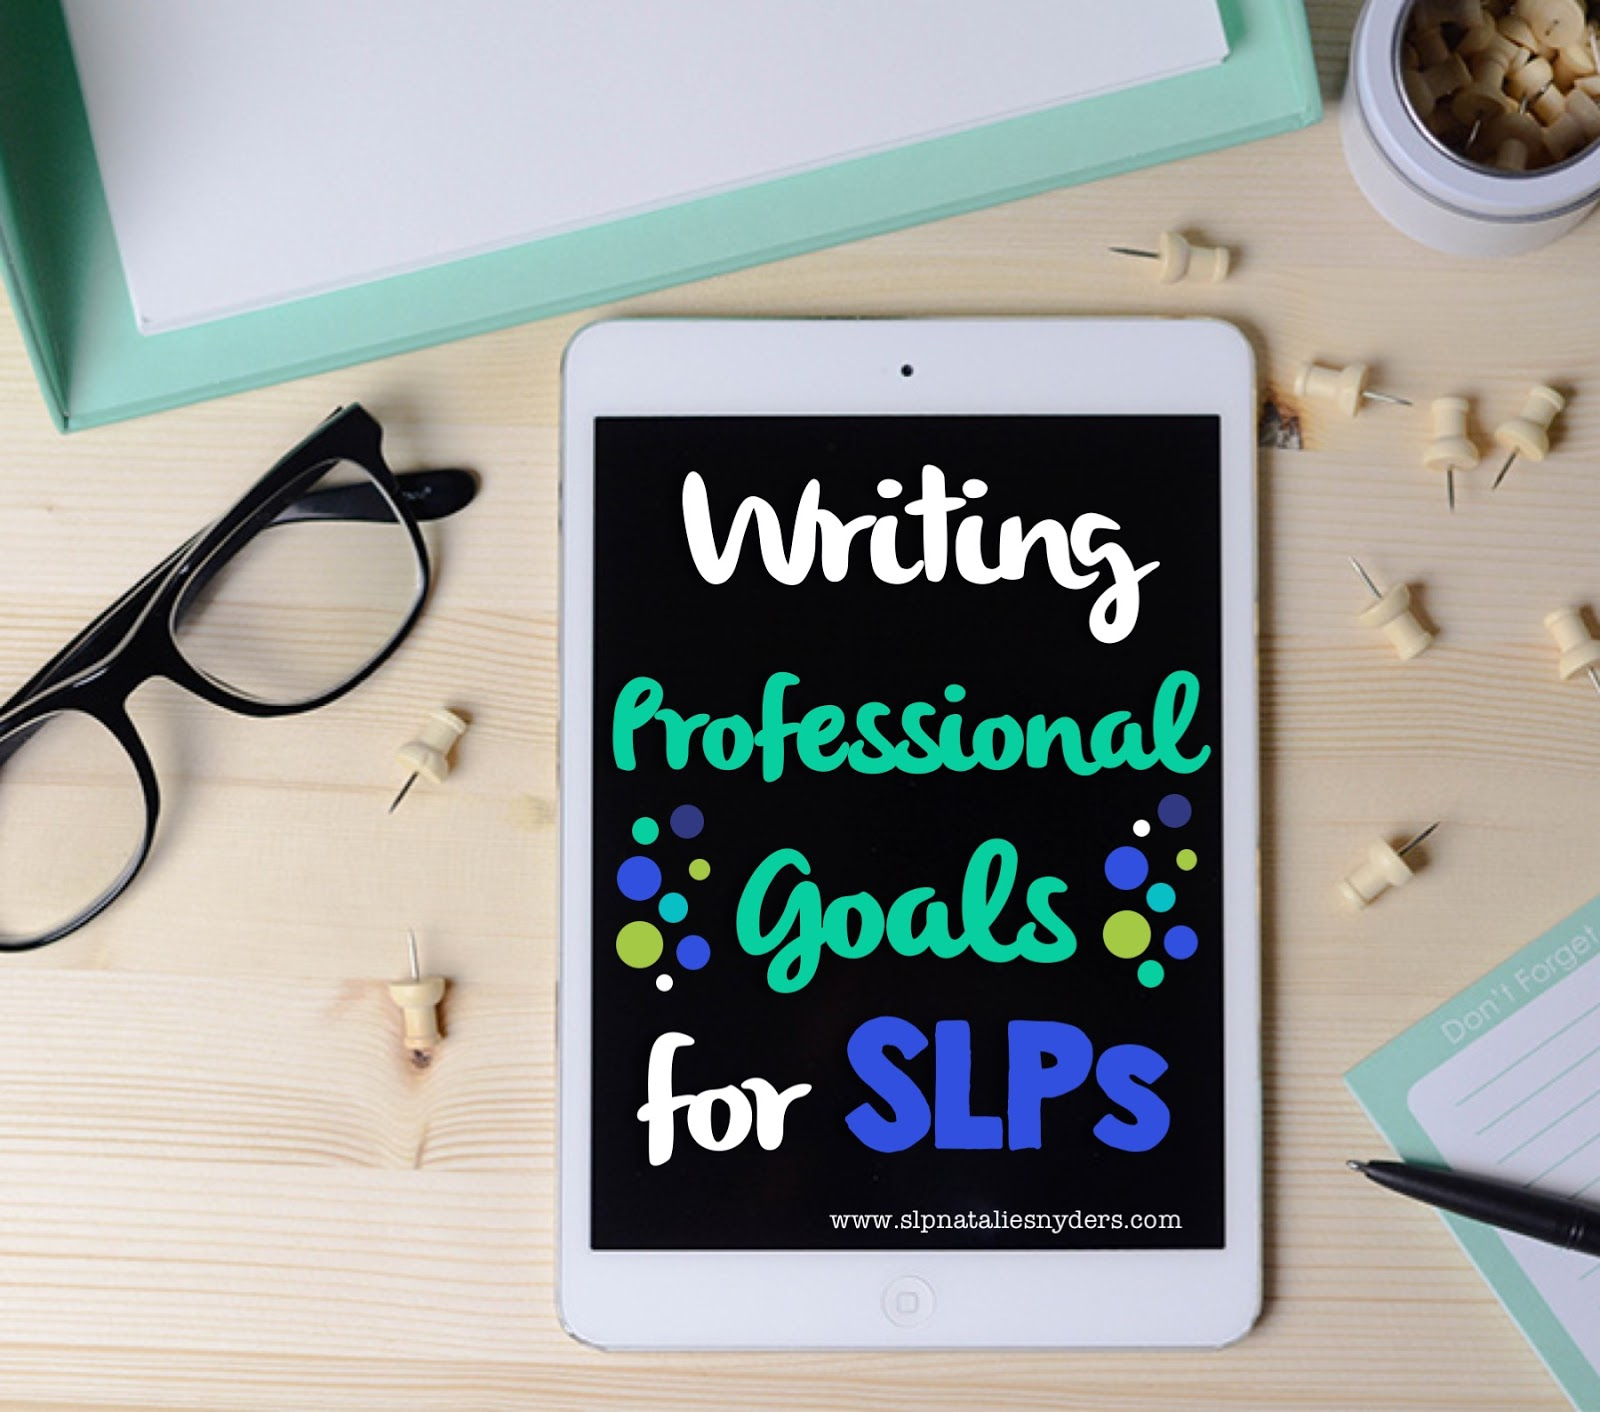 setting professional goals as an slp natalie snyders slp as school based slps many of us are required to write a professional goal for ourselves each year in my district under the danielson model